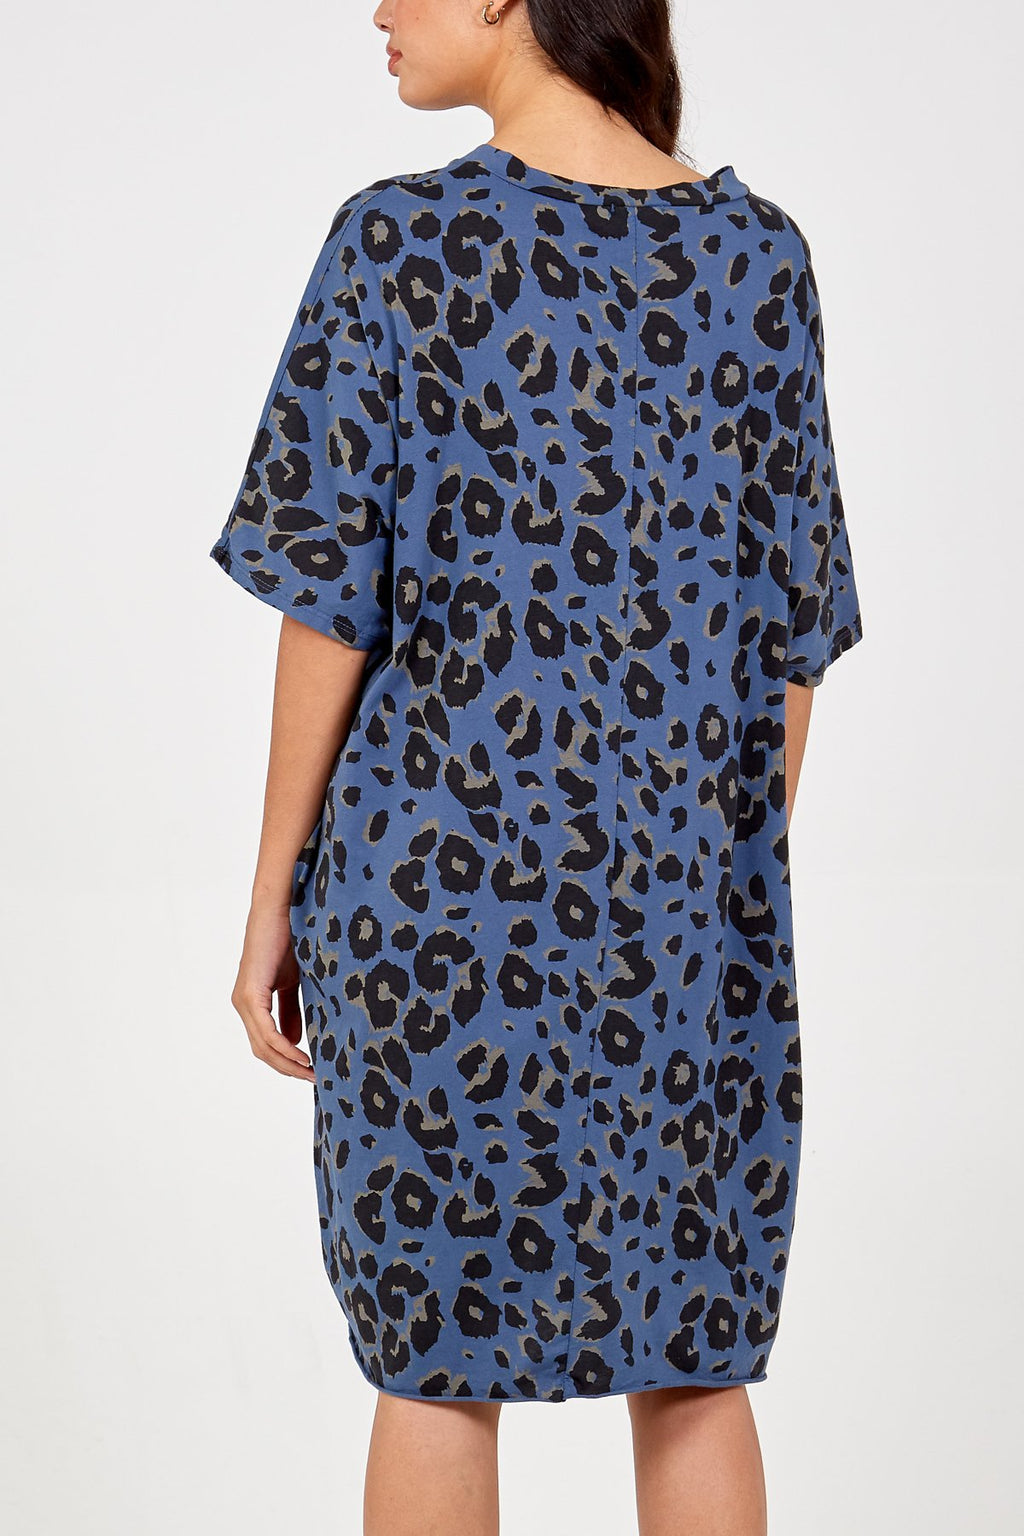 Leopard T-Shirt Dress with Pockets - Blue